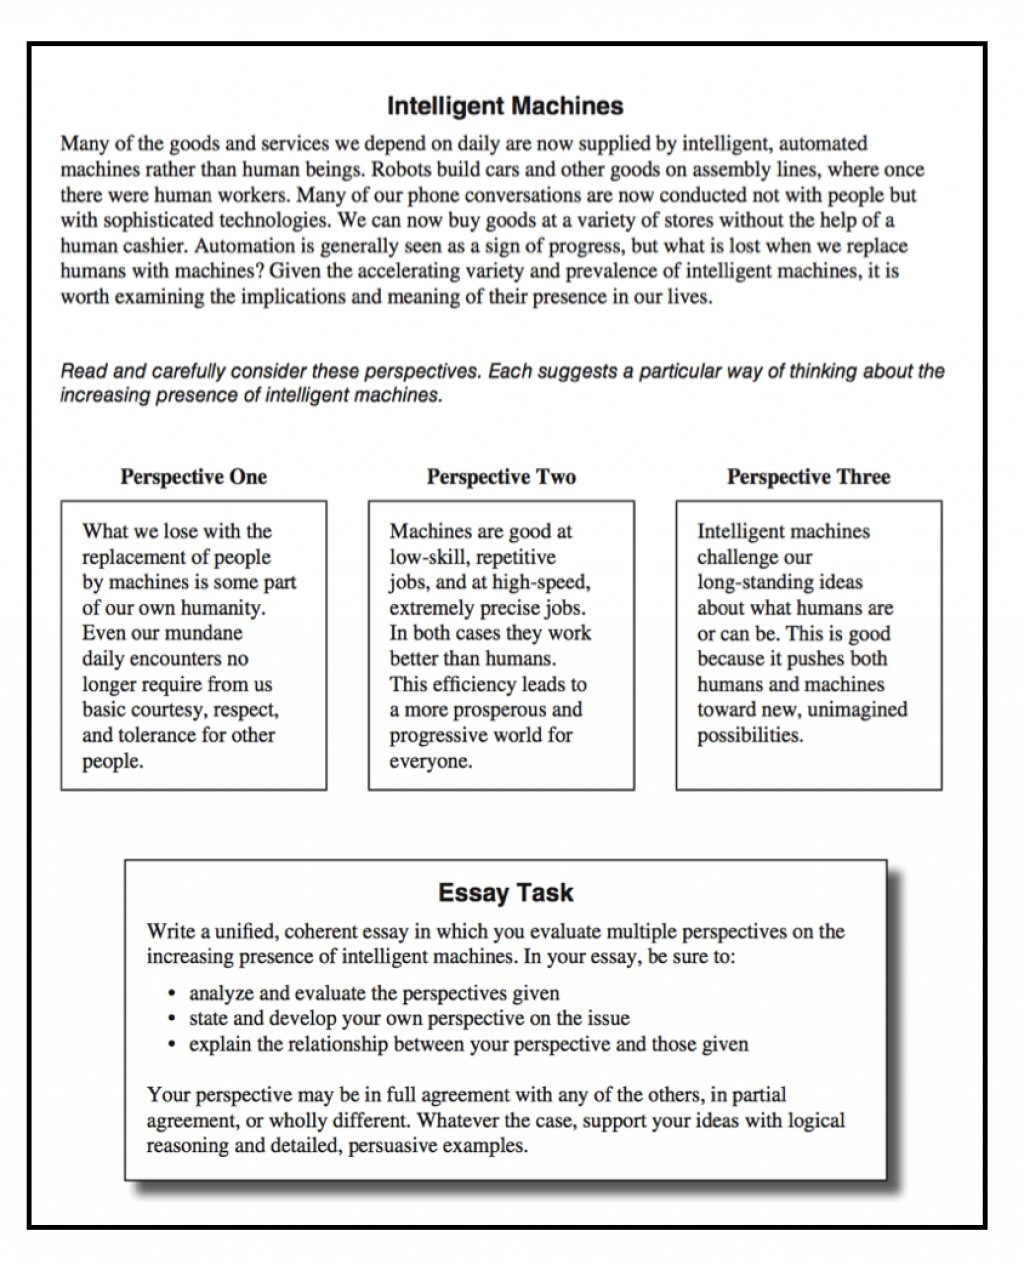 004 Sat Essay Example How To Write Faster Screen Shot Prepscholar Examples Pdf Formula Step Awesome 12 Large